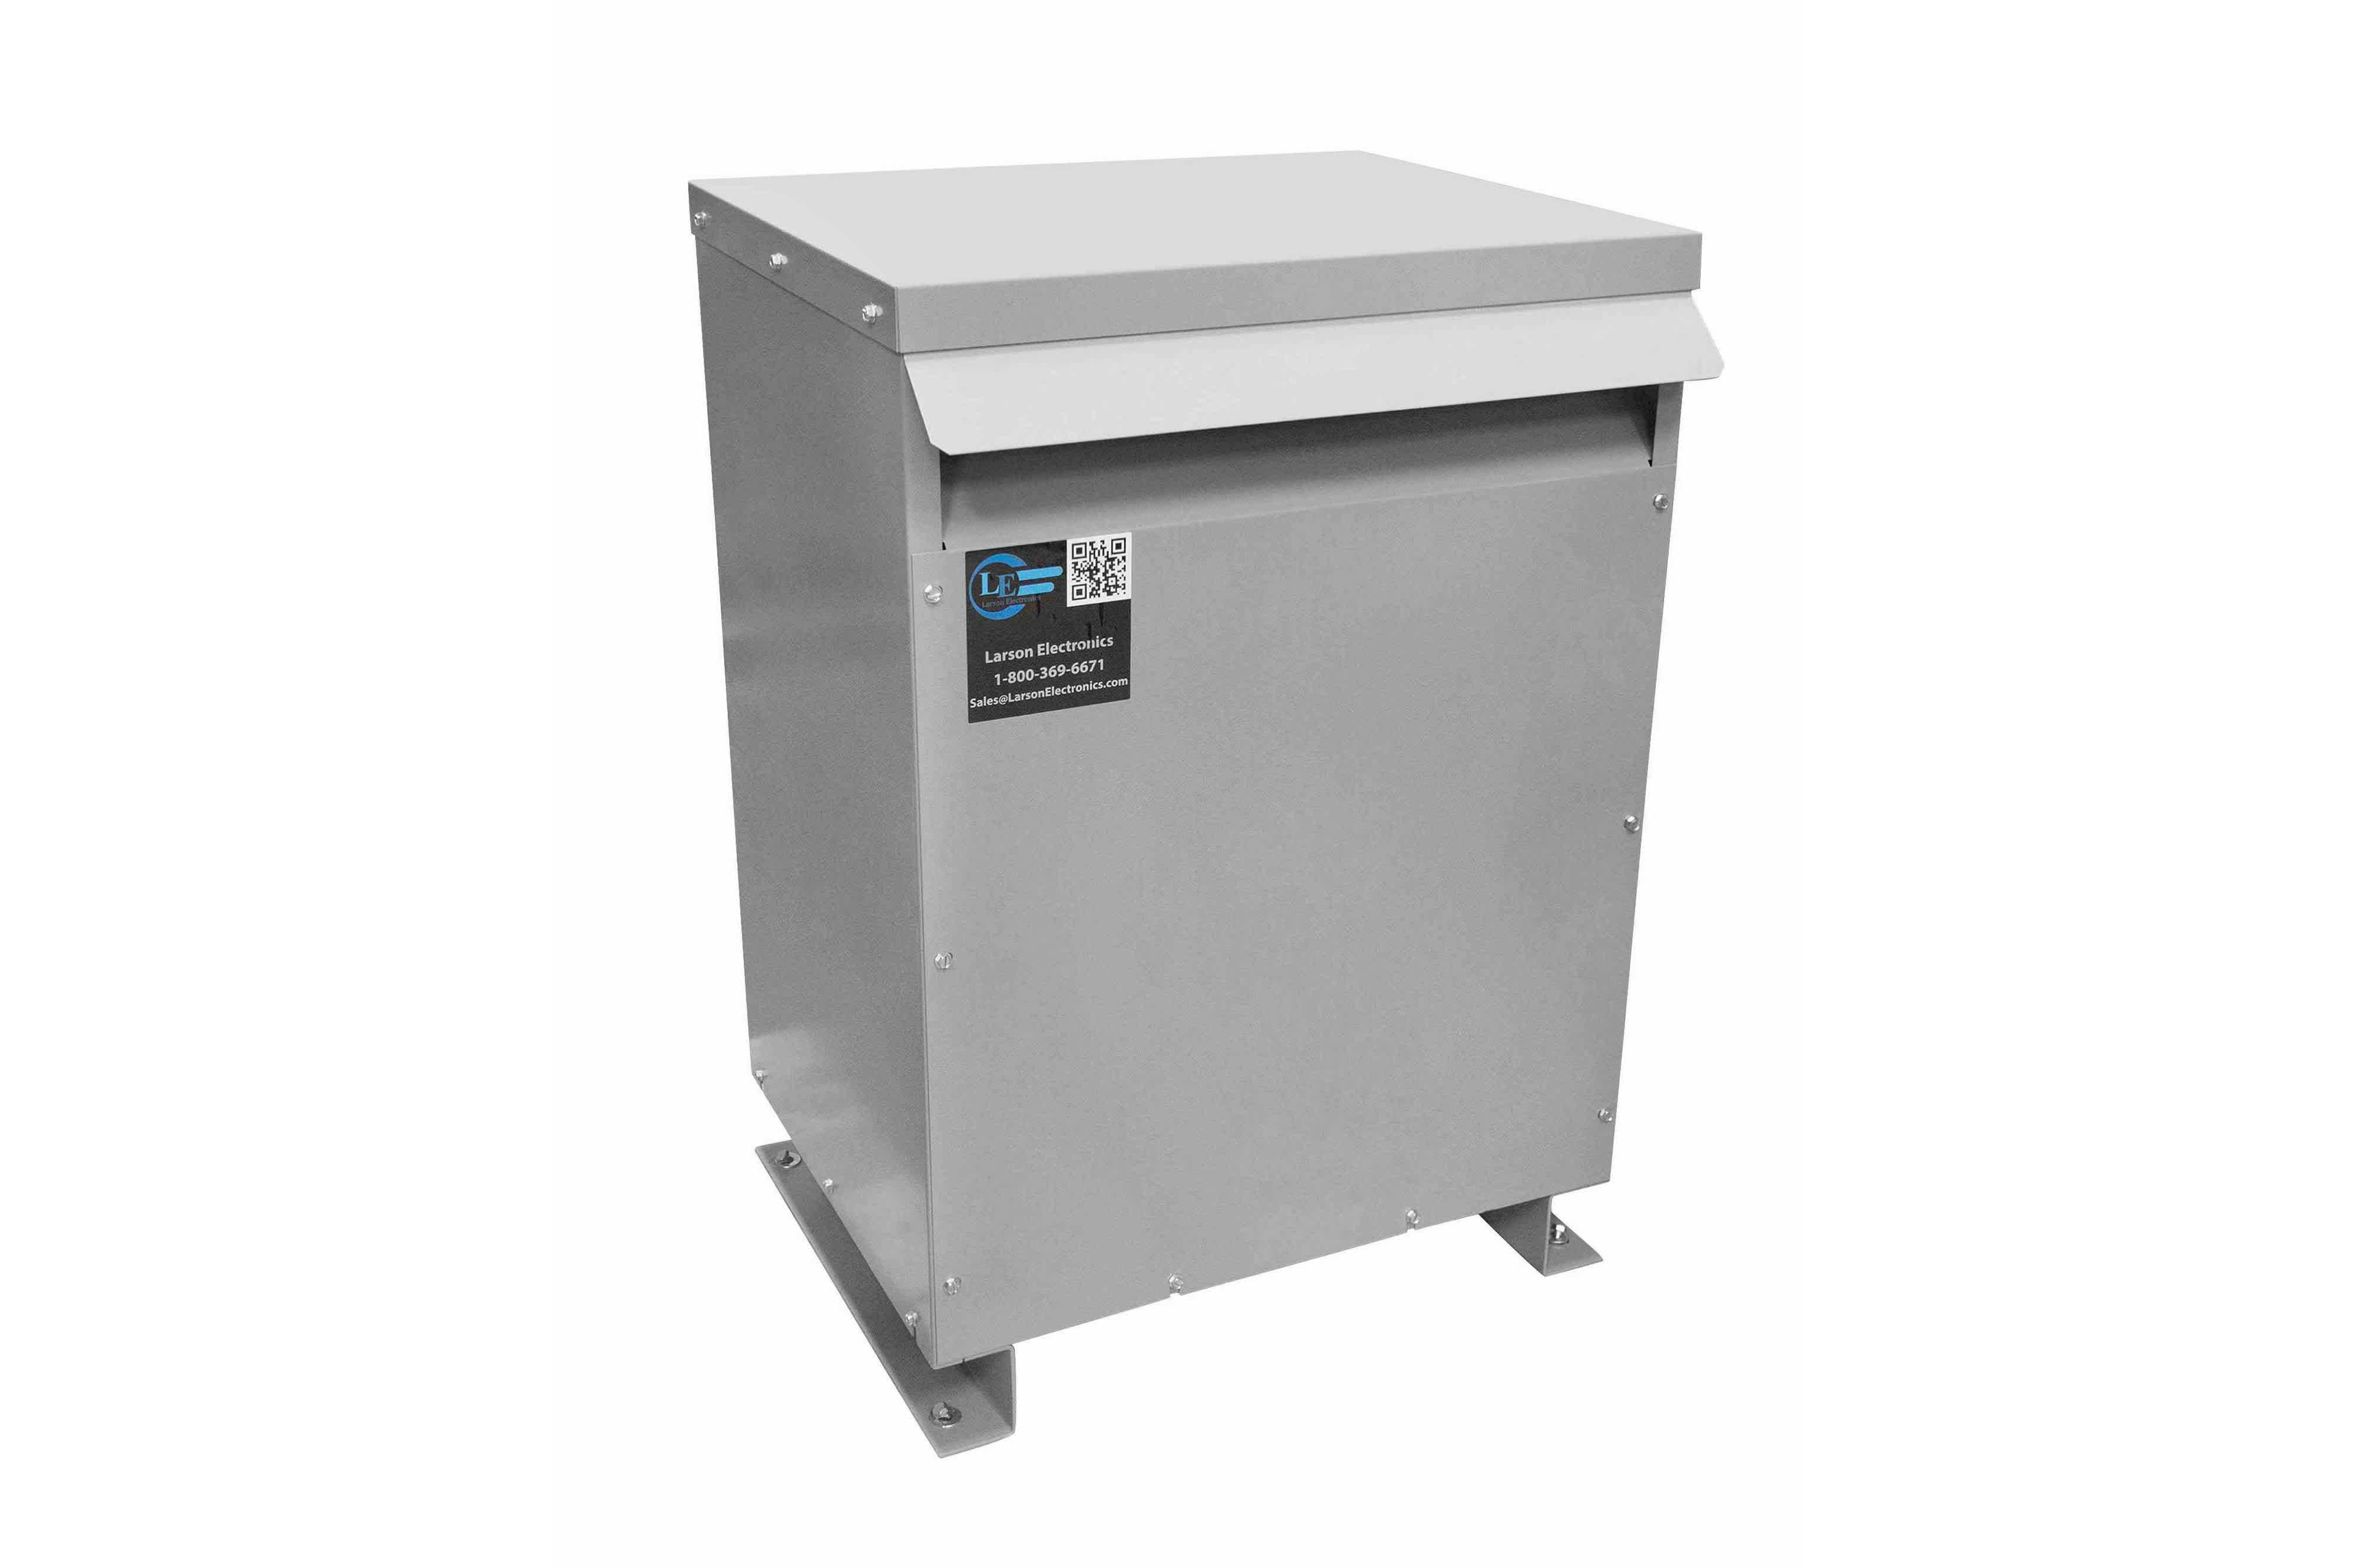 13 kVA 3PH Isolation Transformer, 600V Wye Primary, 240V/120 Delta Secondary, N3R, Ventilated, 60 Hz